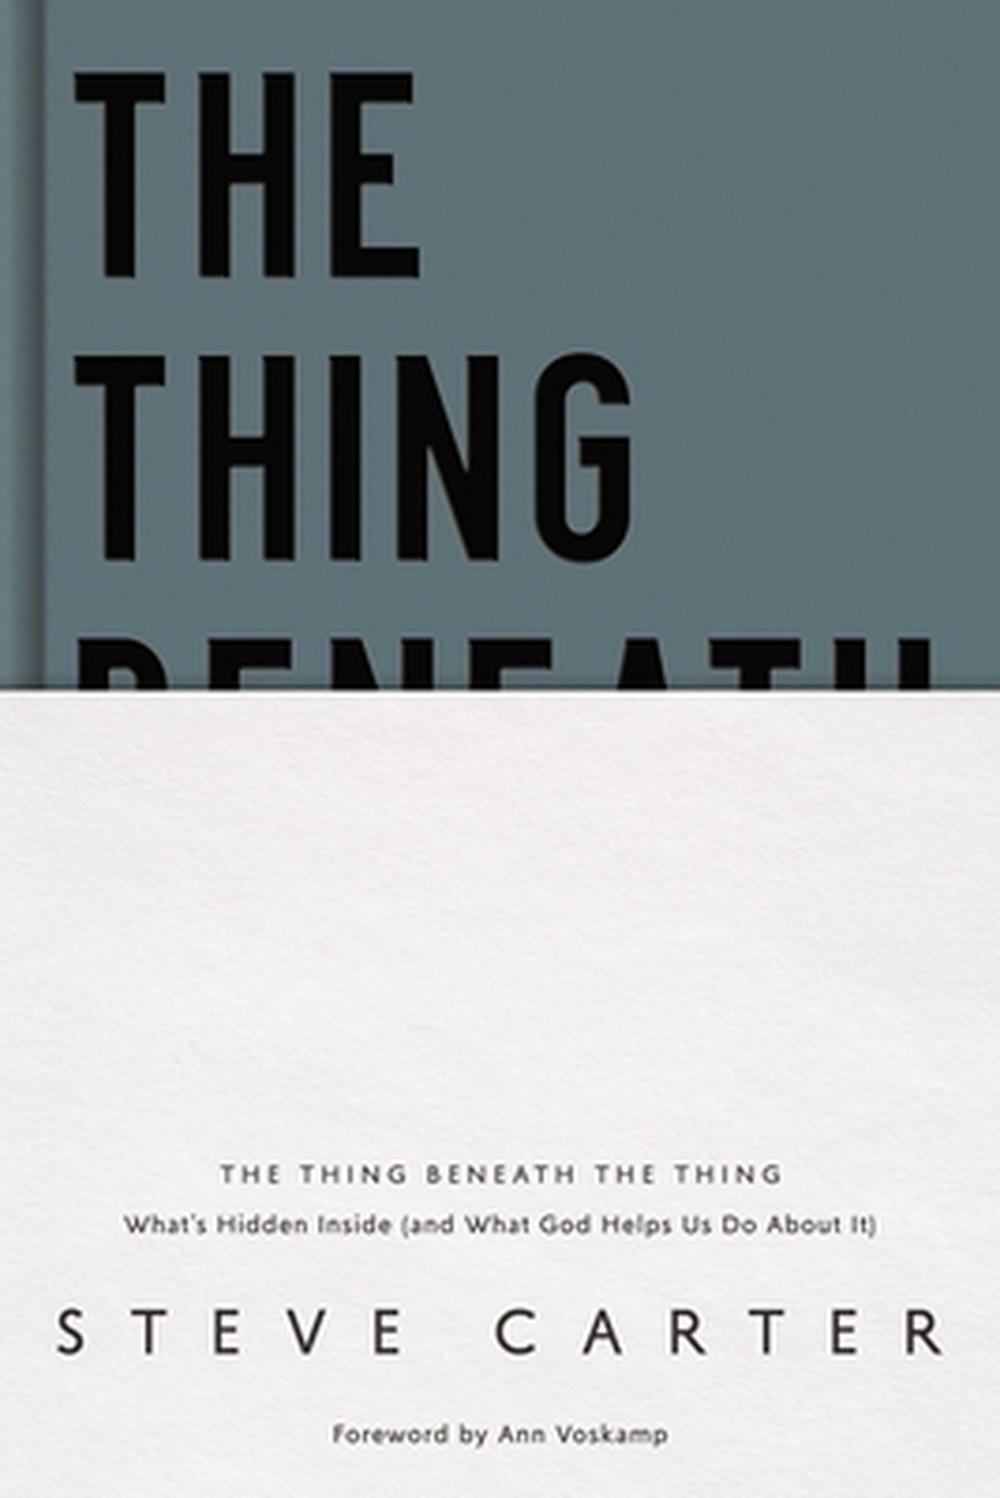 Thing Beneath the Thing